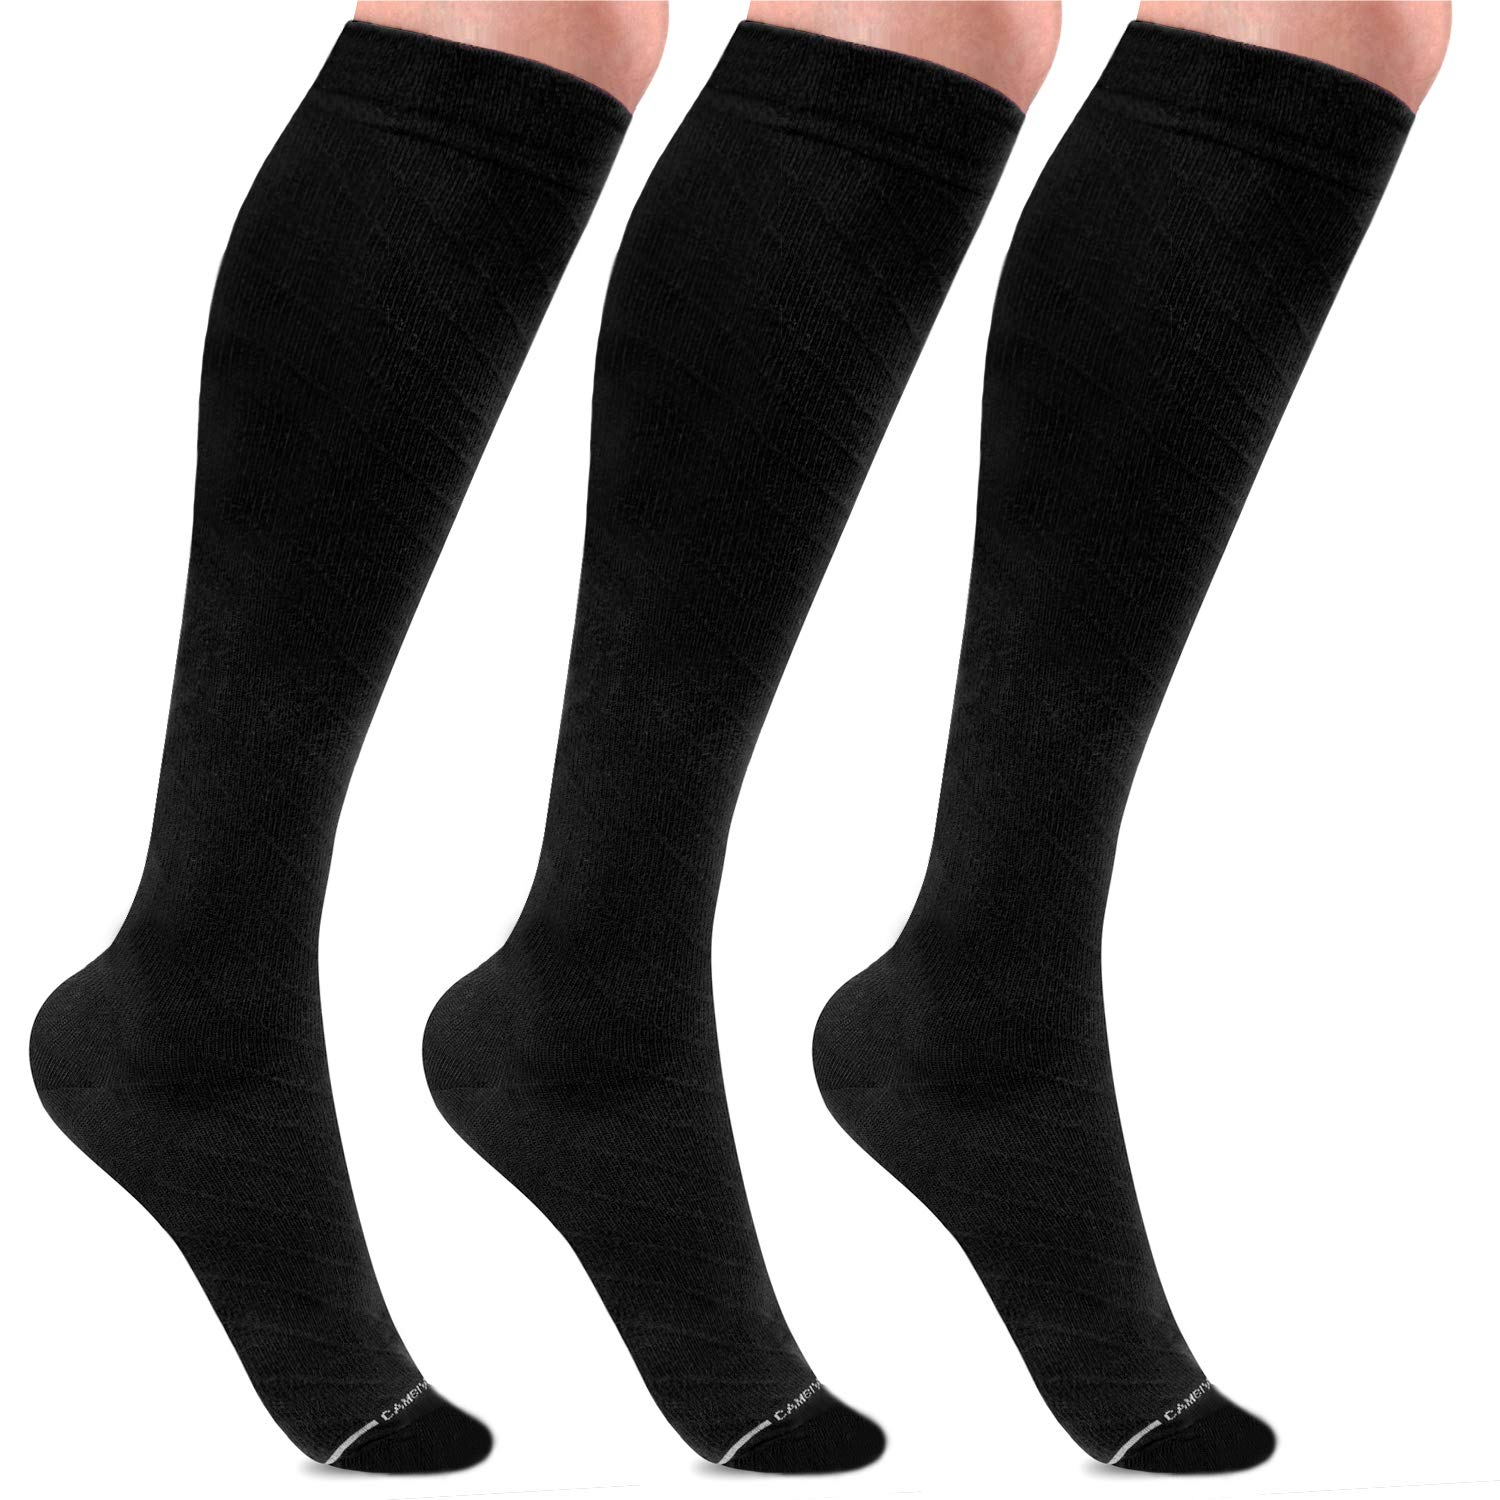 Cambivo Compression Socks for Women & Men, Cotton Dress Socks, Fit for Nurses, Flight, Running, Athletic Sports, Travel, Pregnancy - 3 Pairs CS50